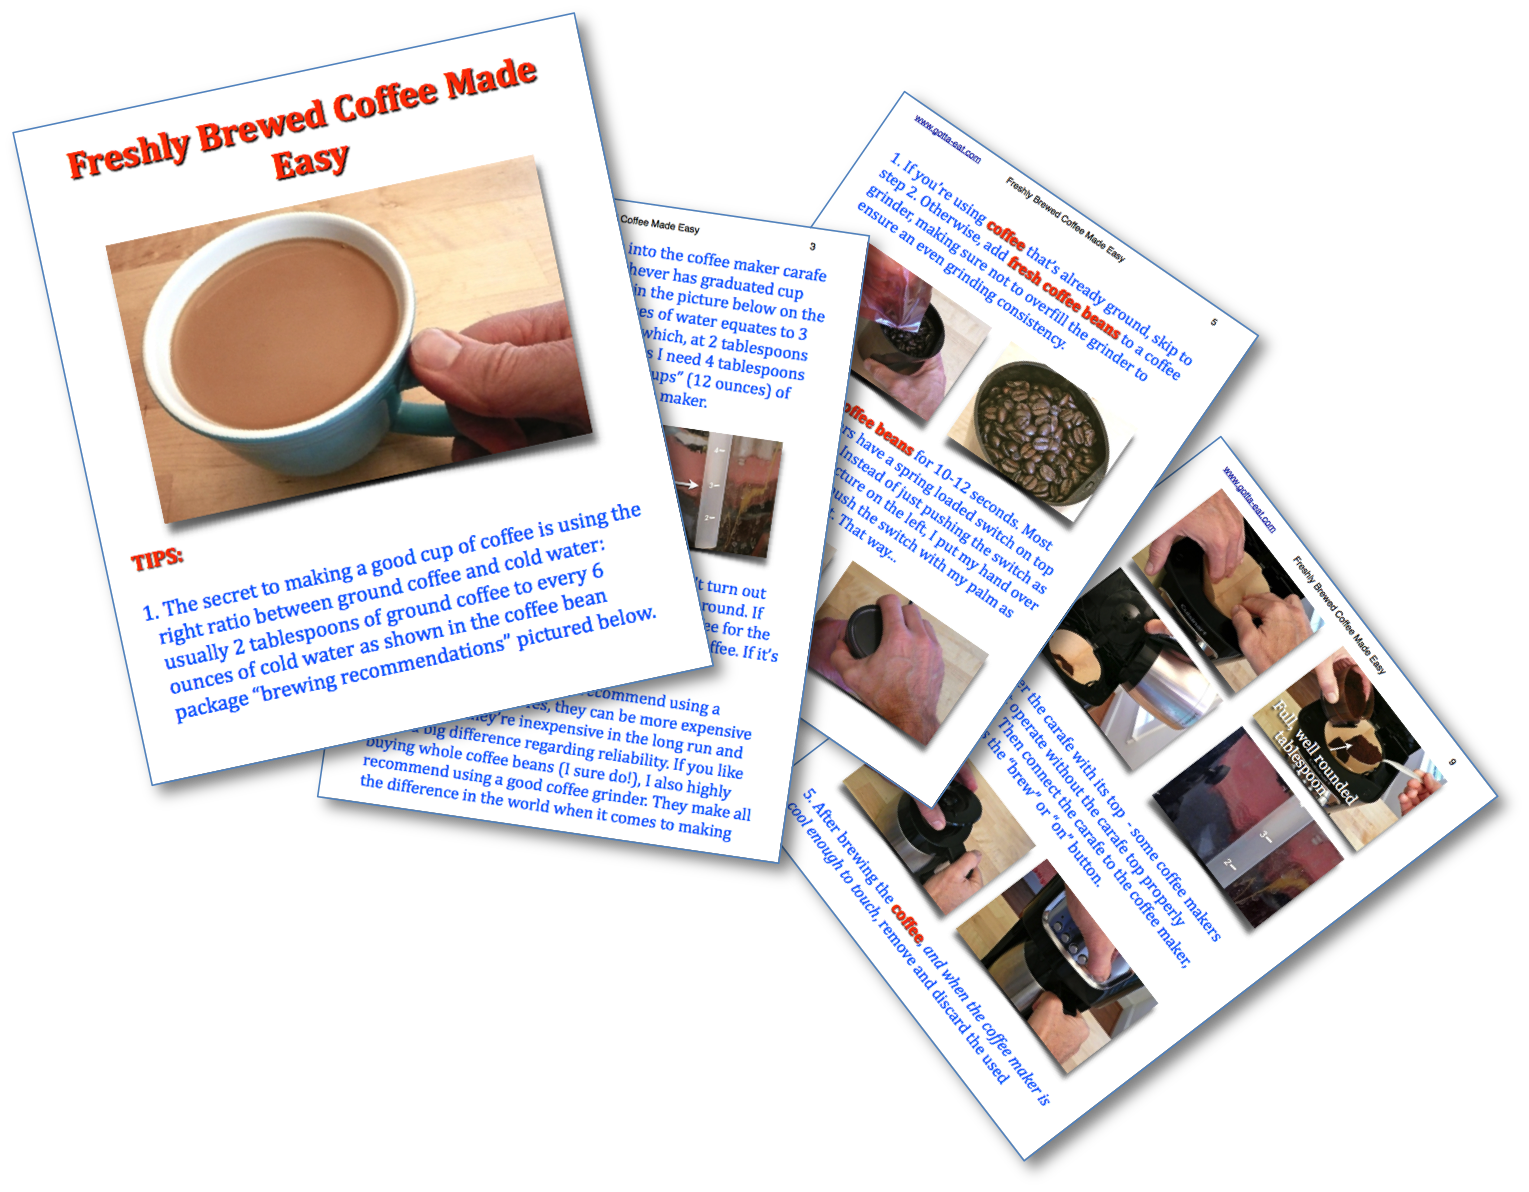 Freshly Brewed Coffee Step-By-Step Picture Book Recipe pages